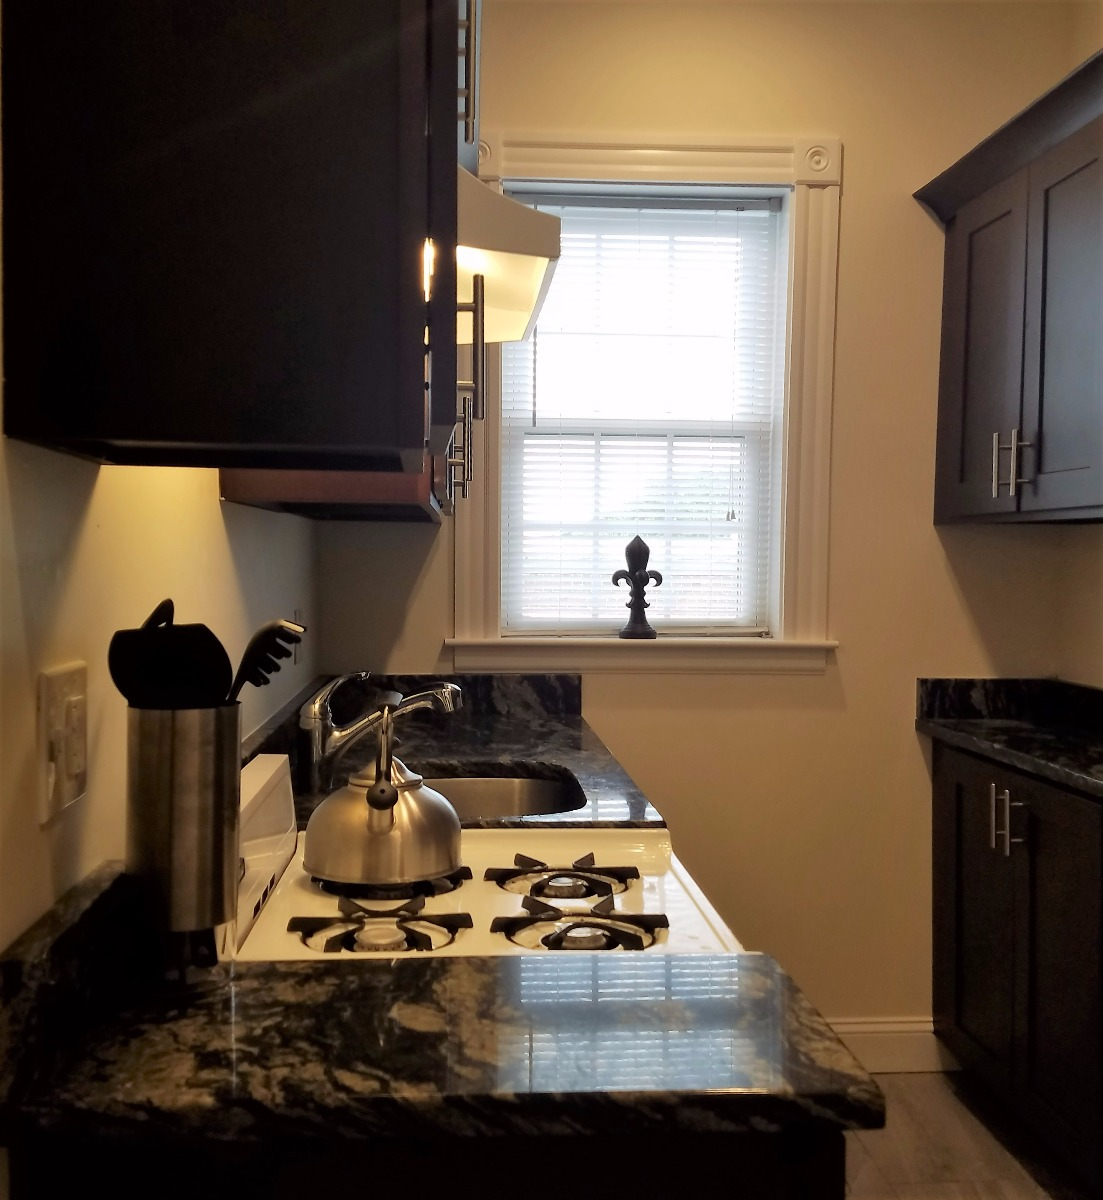 JUST LISTED 2 BED/1BATH Glenville Ave., New/Renovated Kitchen, 9/1